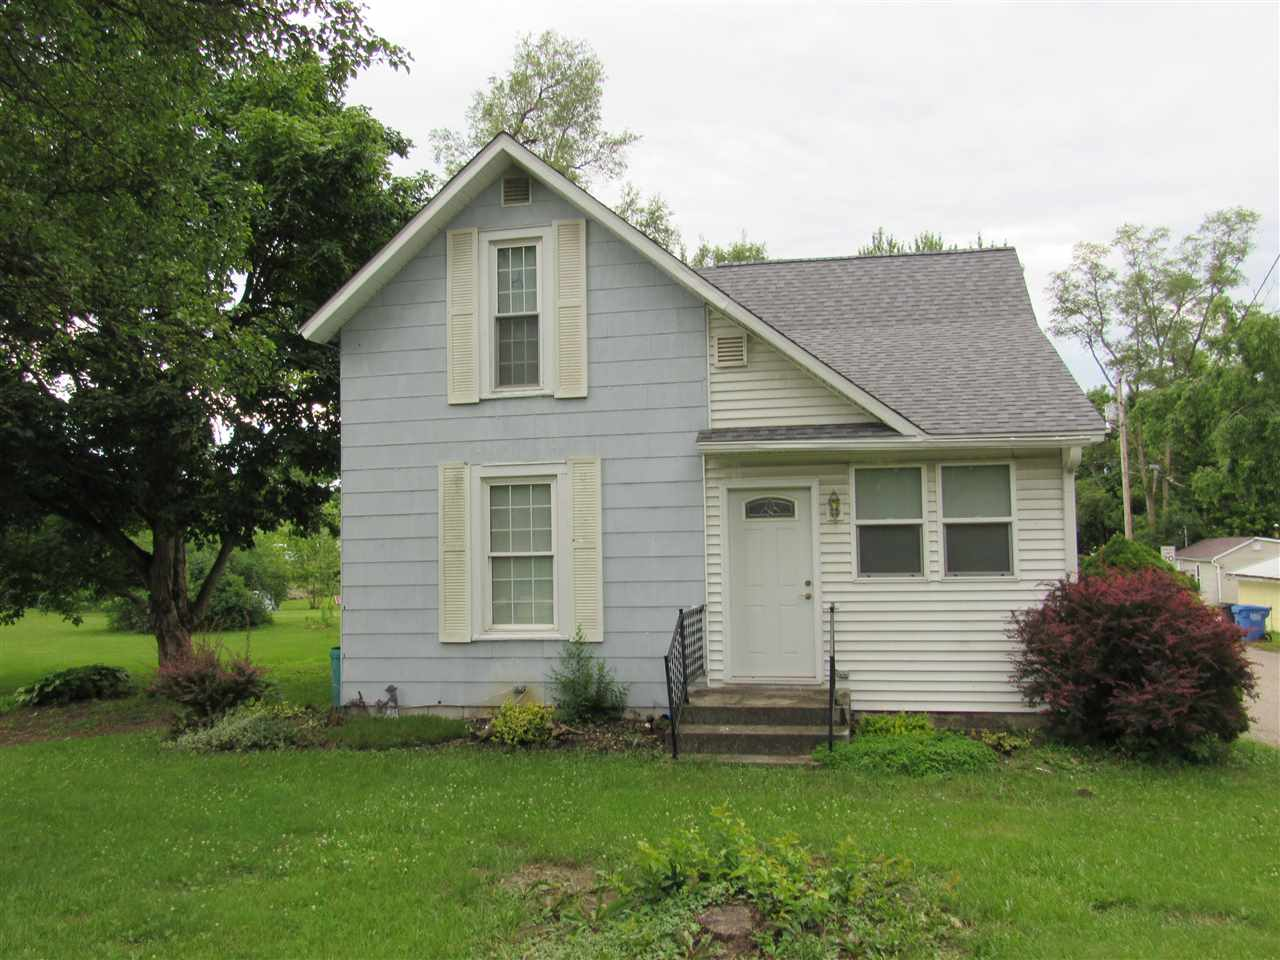 601 S State, South Whitley, IN 46787